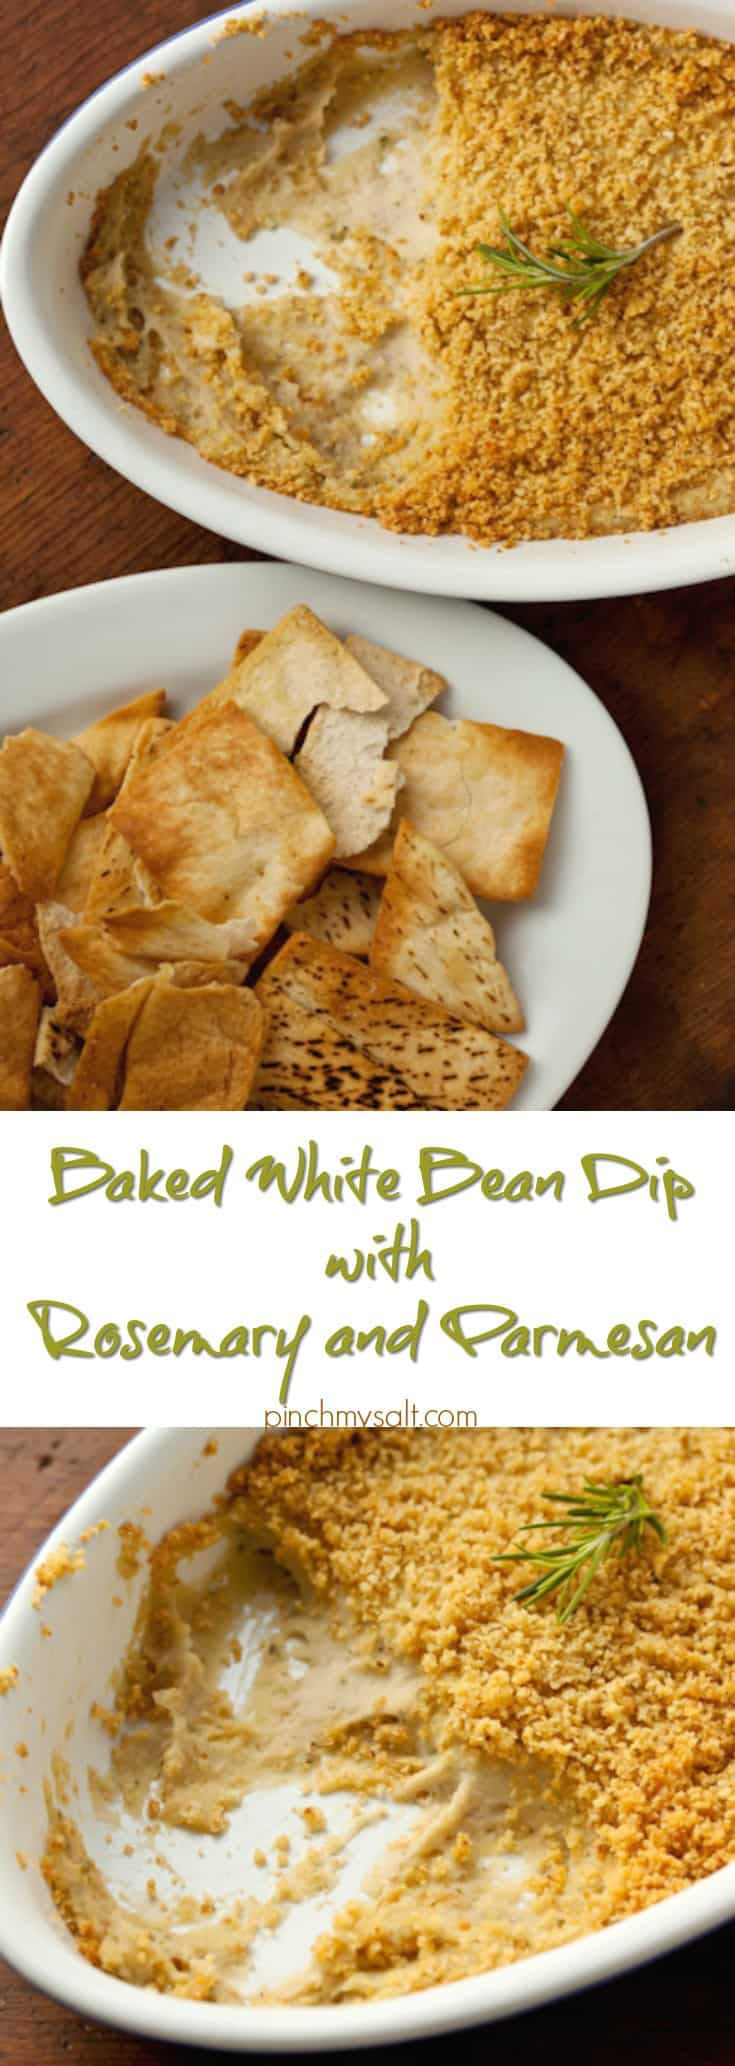 Baked White Bean Dip with Rosemary and Parmesan | pinchmysalt.com